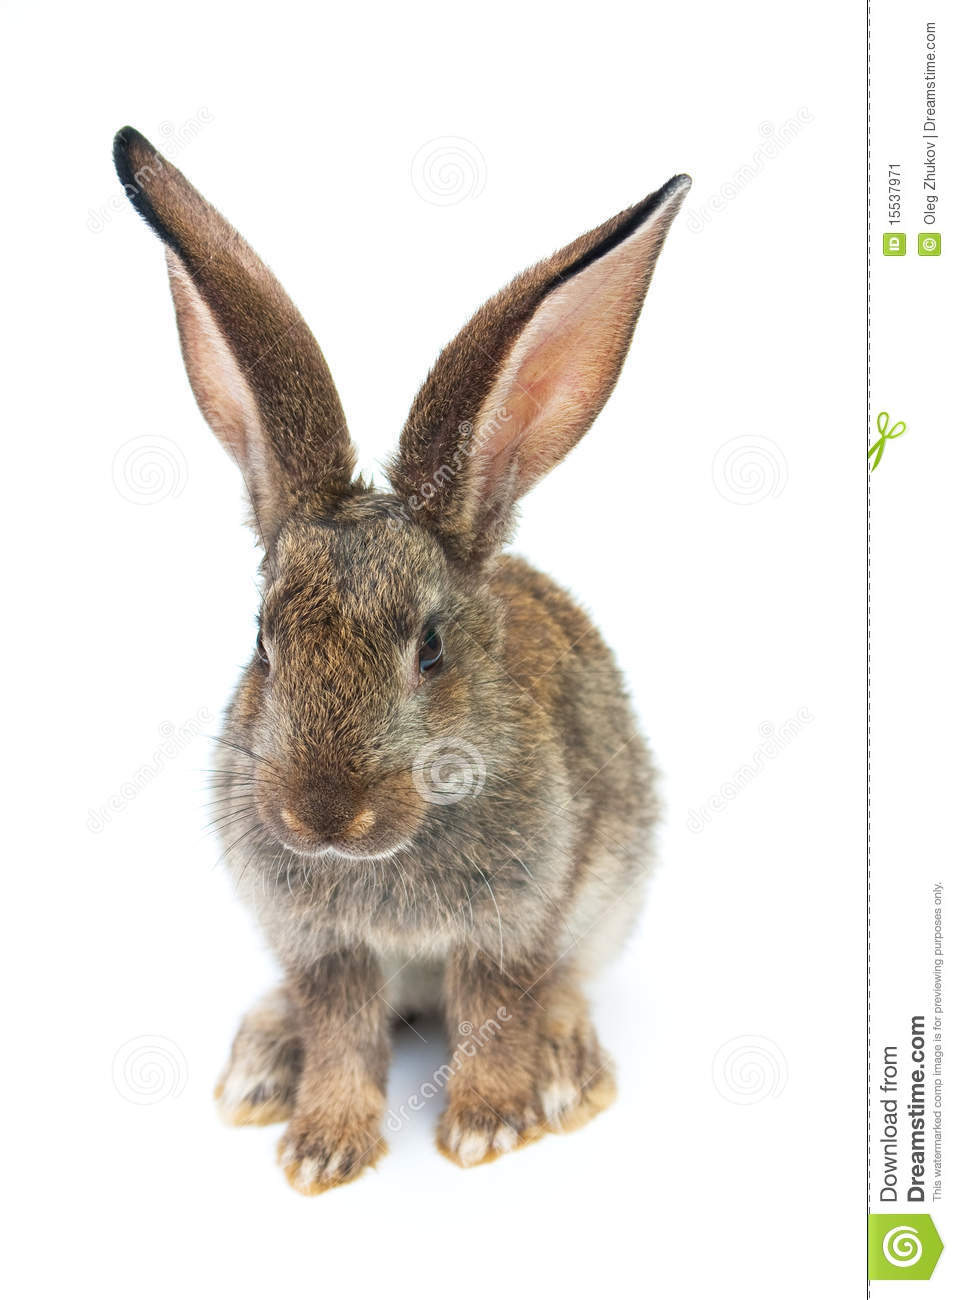 Happy New Year Of Rabbit Stock Image - Image: 15537971